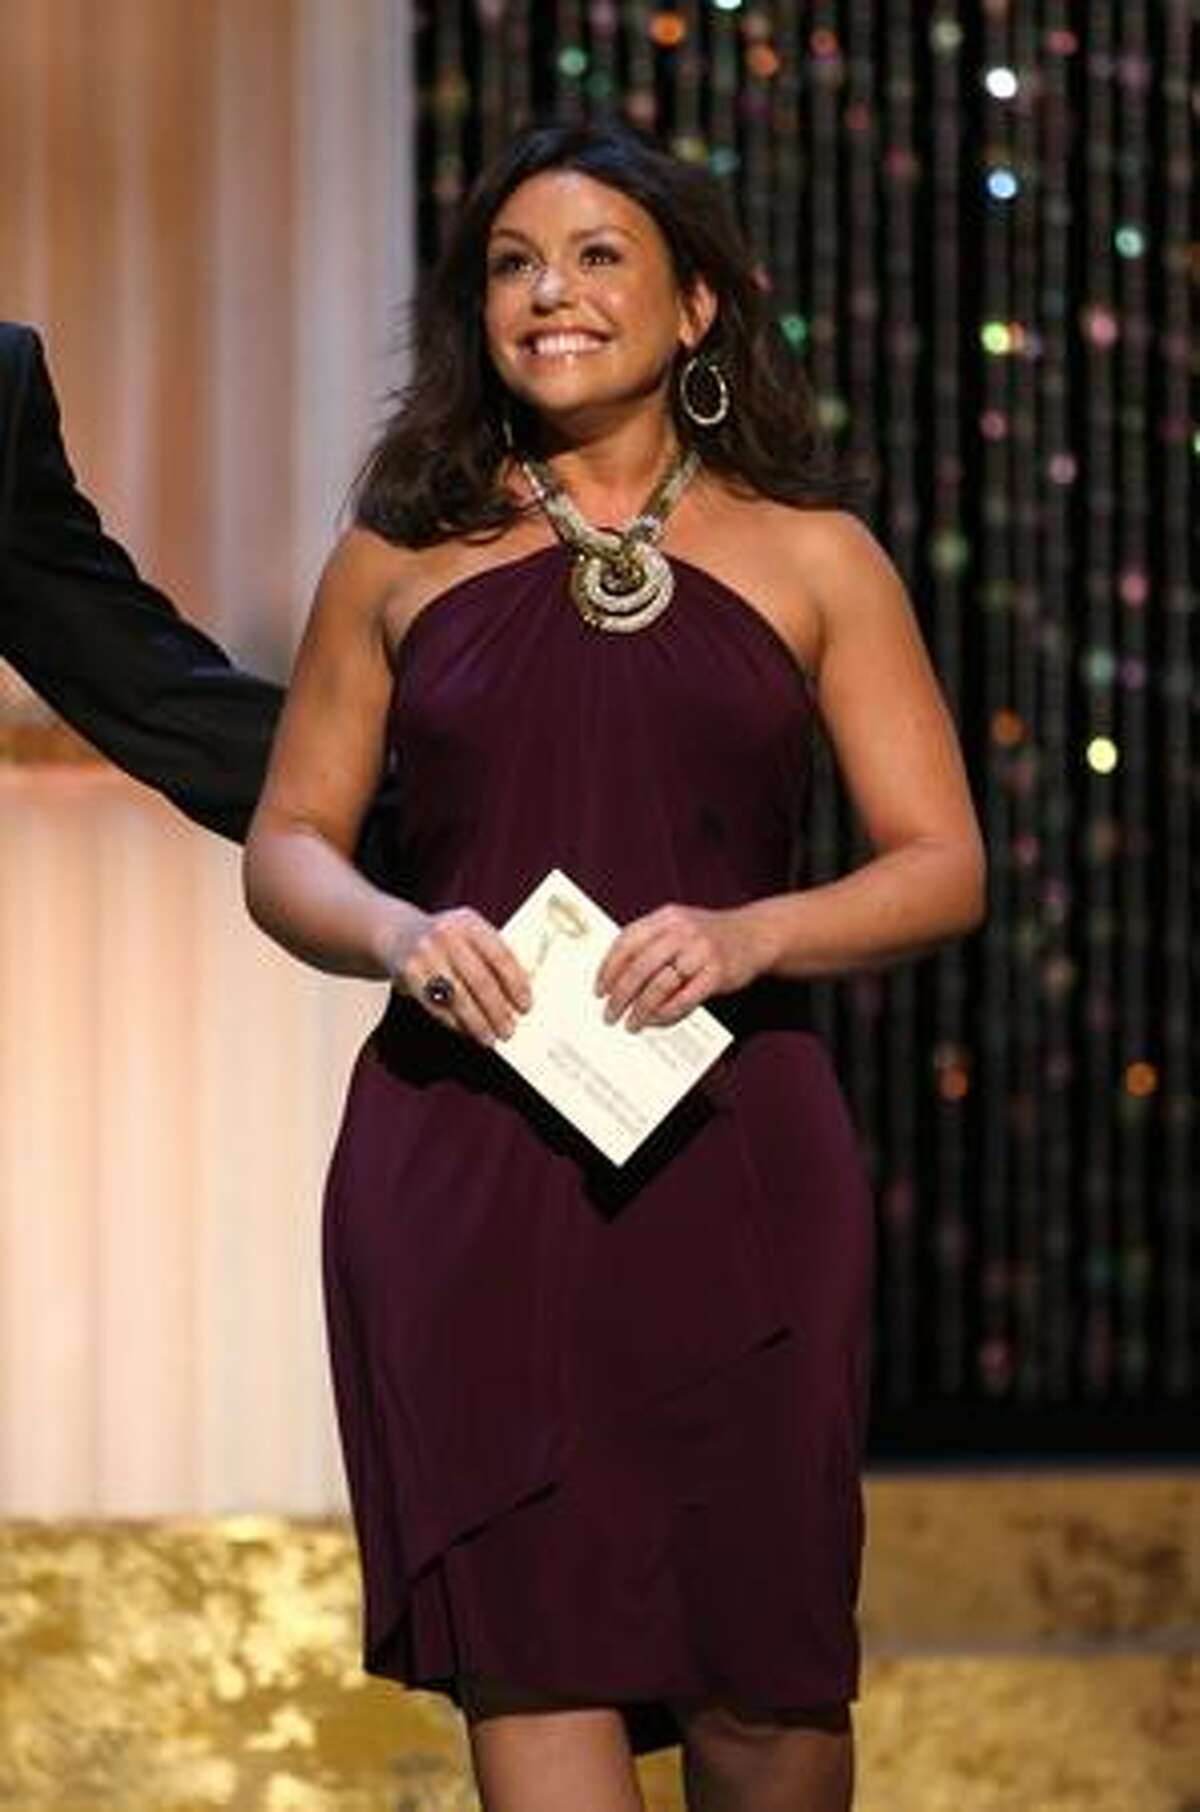 TV Personality Rachel Ray present the Outstanding Supporting Actor in a Drama Series during the 36th Annual Daytime Emmy Awards at The Orpheum Theatre on Sunday in Los Angeles, Calif.